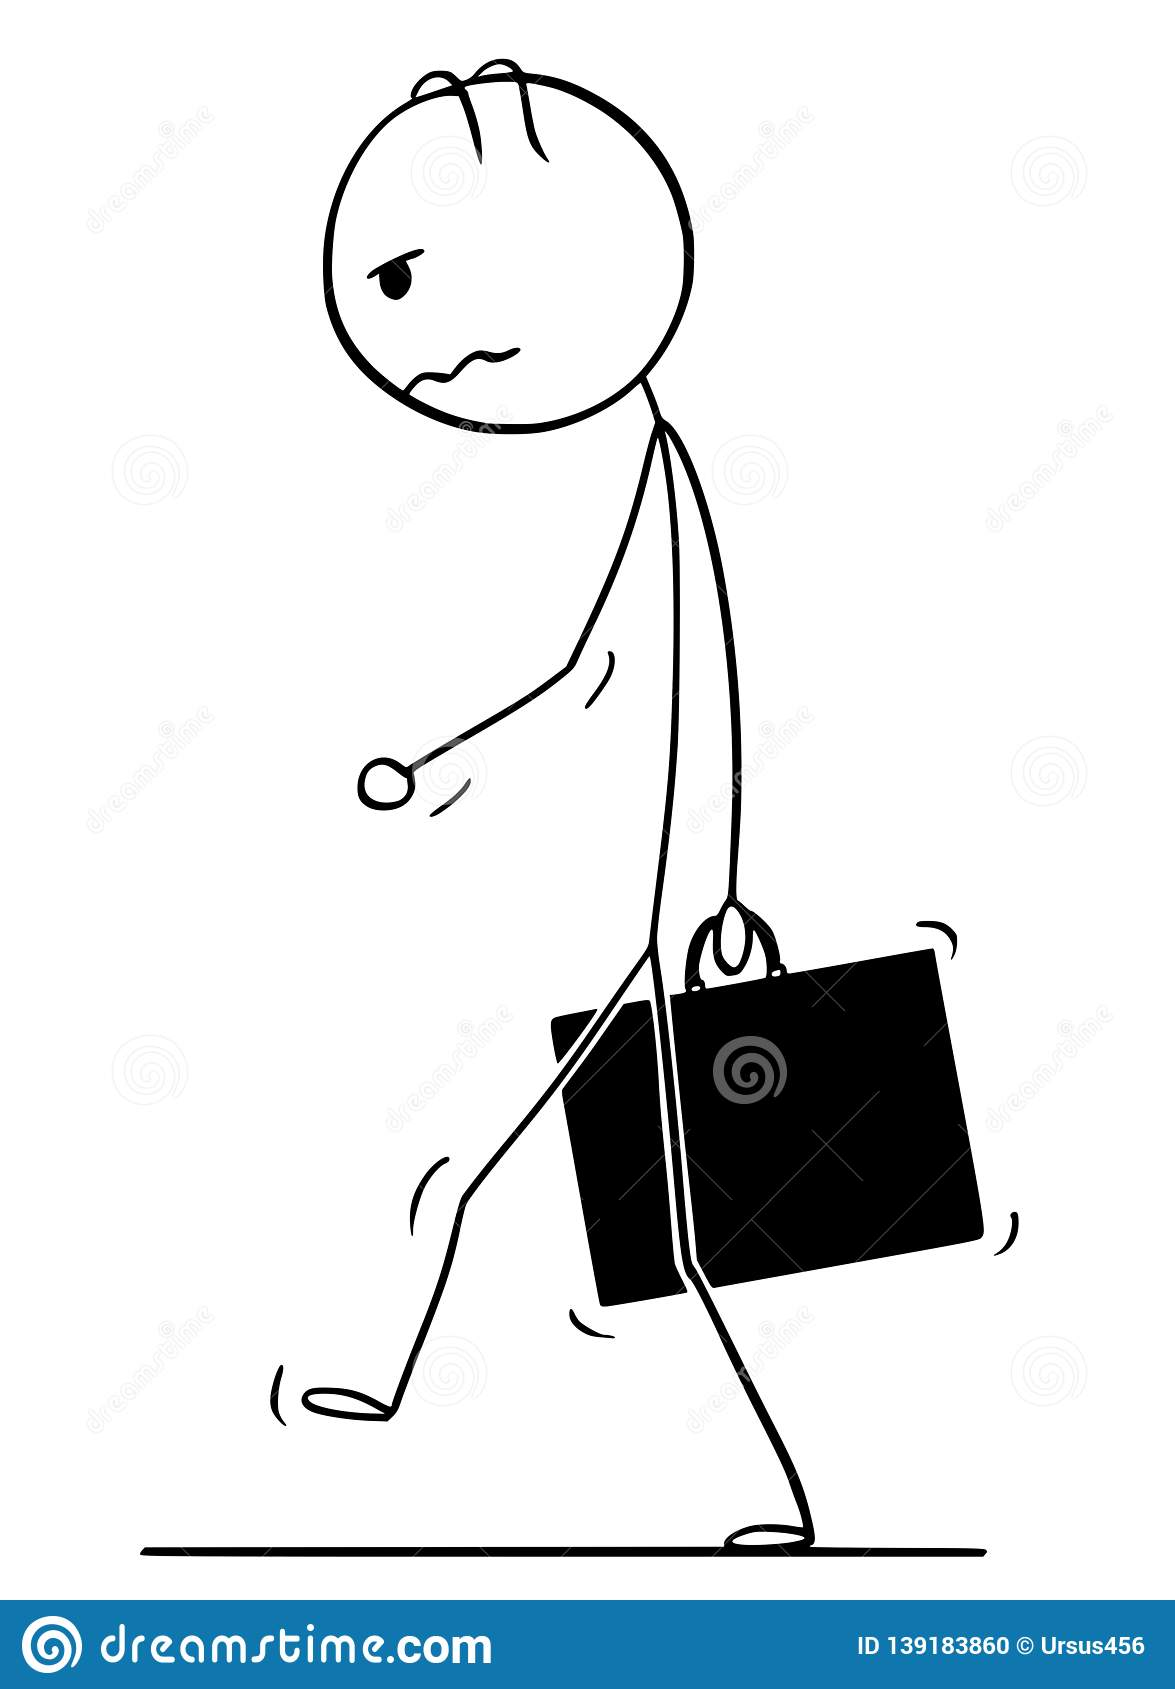 Cartoon stick figure drawing of sad or depressed man or businessman with briefcase walking and thinking about trouble or problem